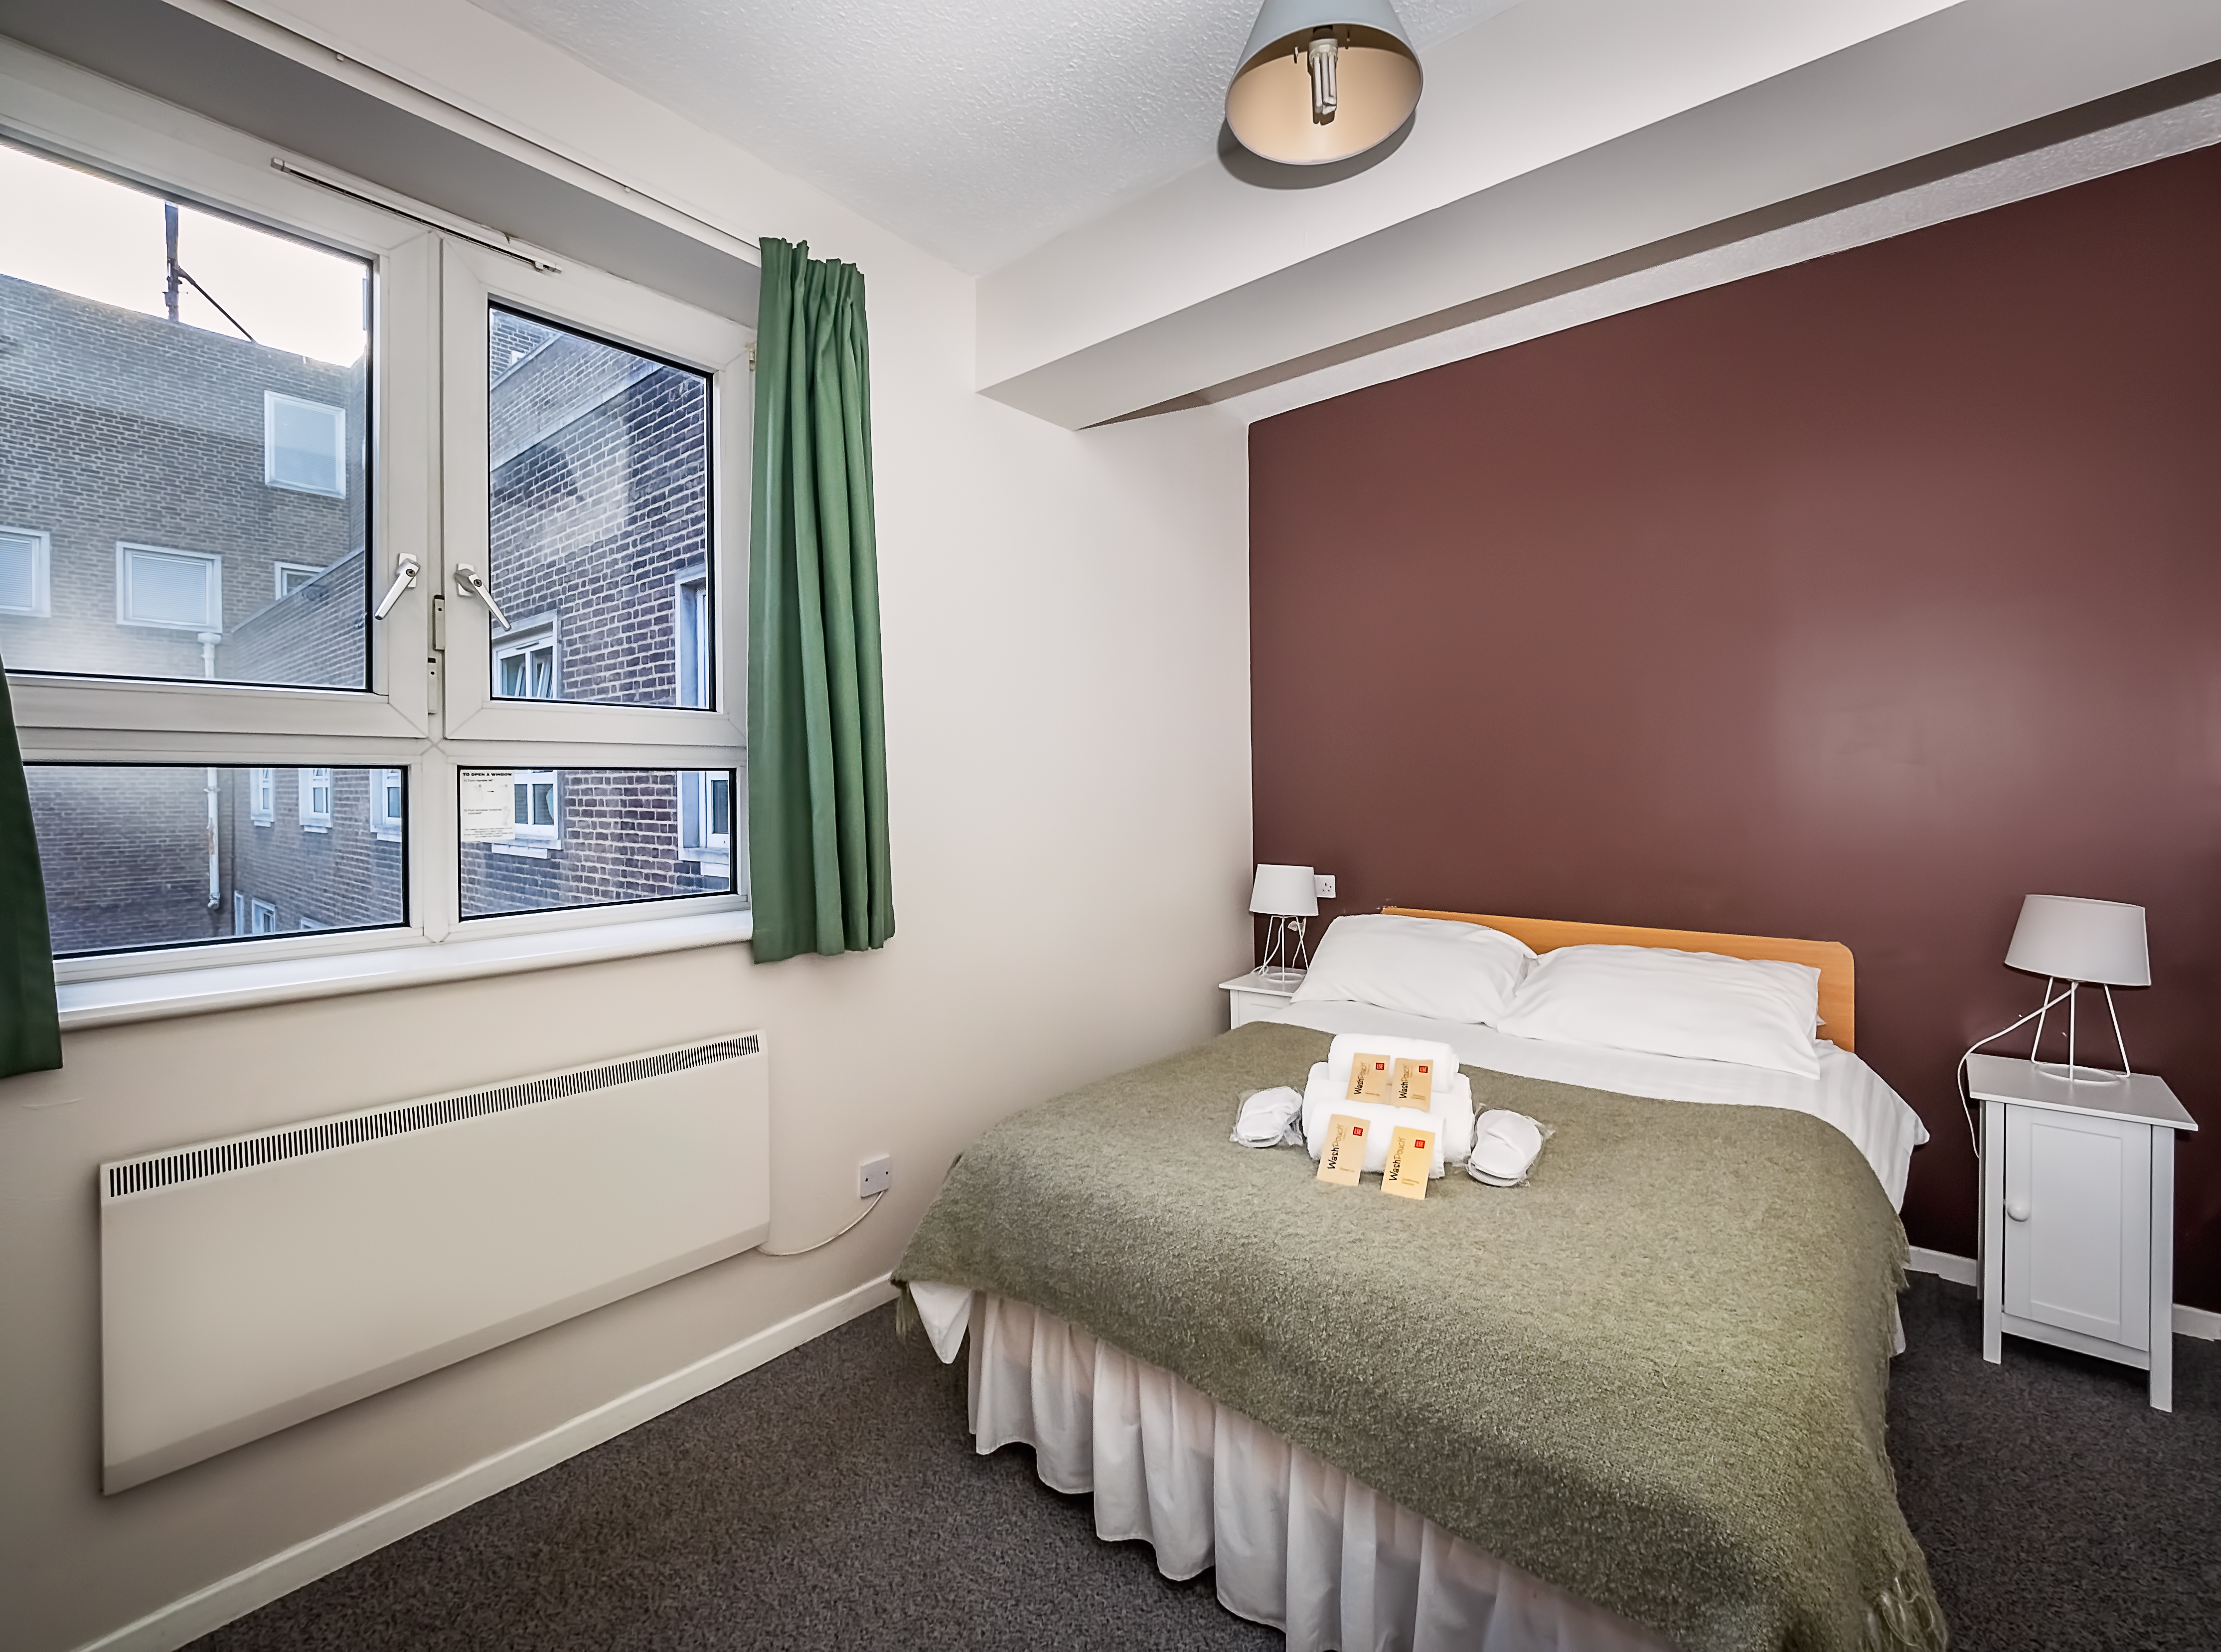 Bankside House Faculty Accommodation